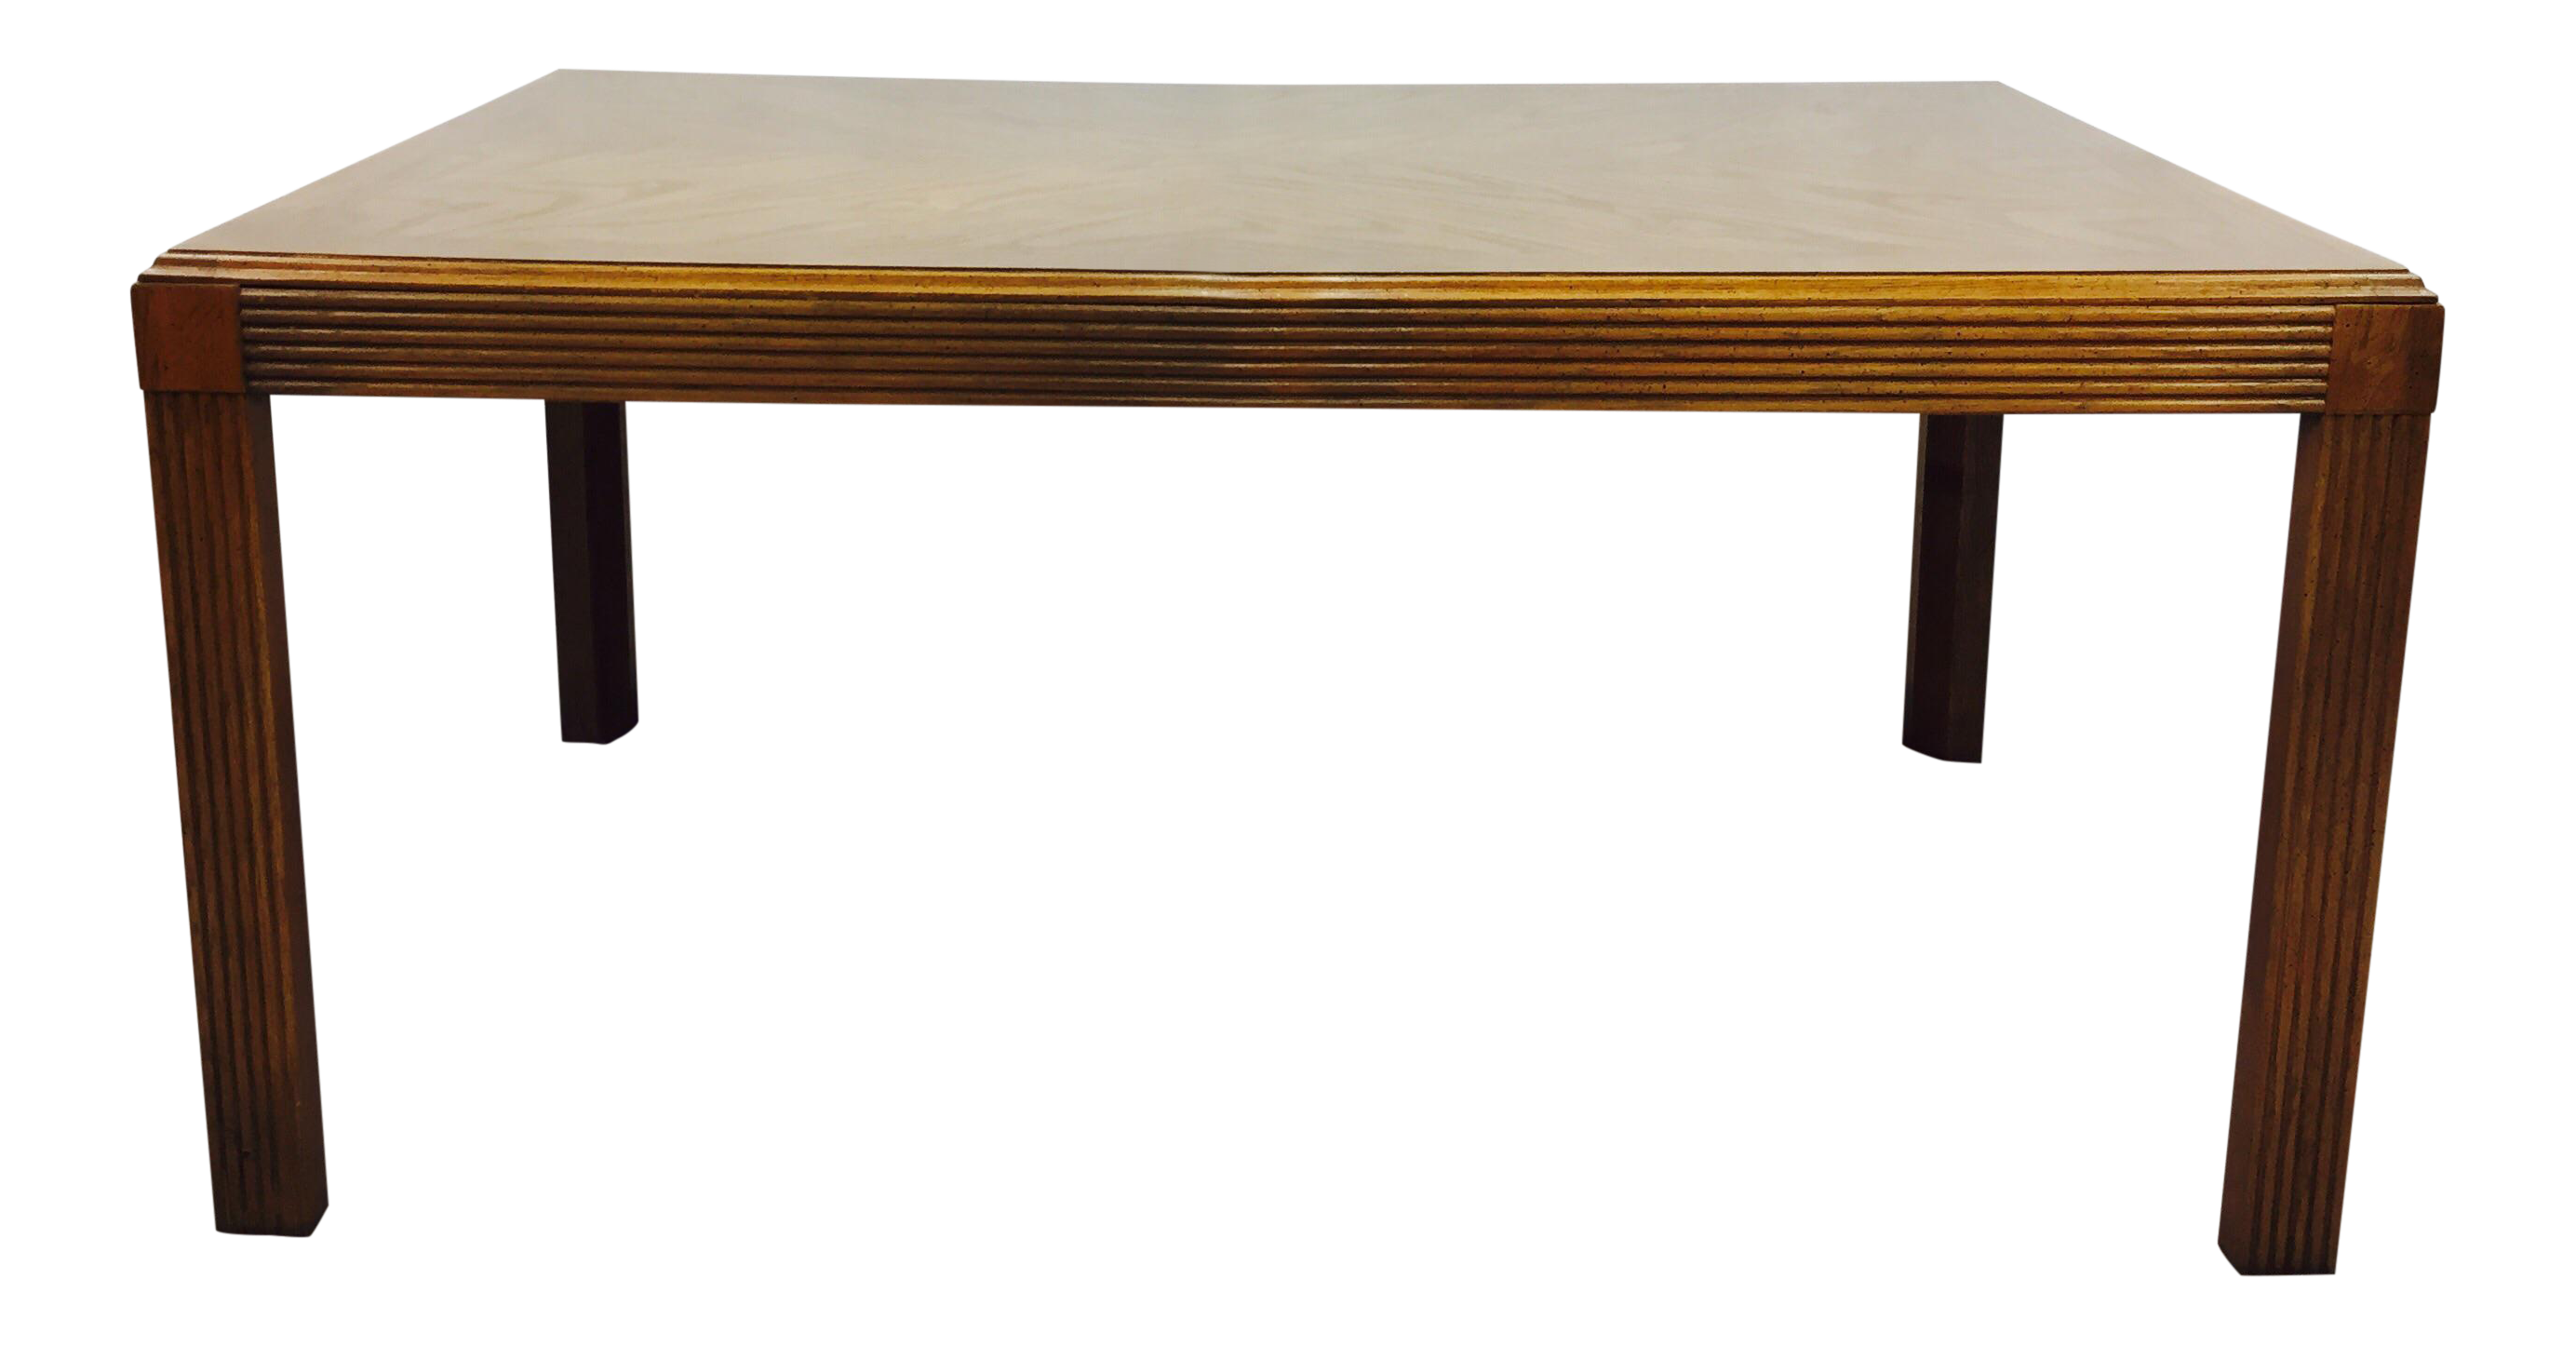 Vintage Mid Century Parsons Dining Table Chairish : vintage mid century parsons dining table 0401 from www.chairish.com size 2768 x 1446 png 2249kB